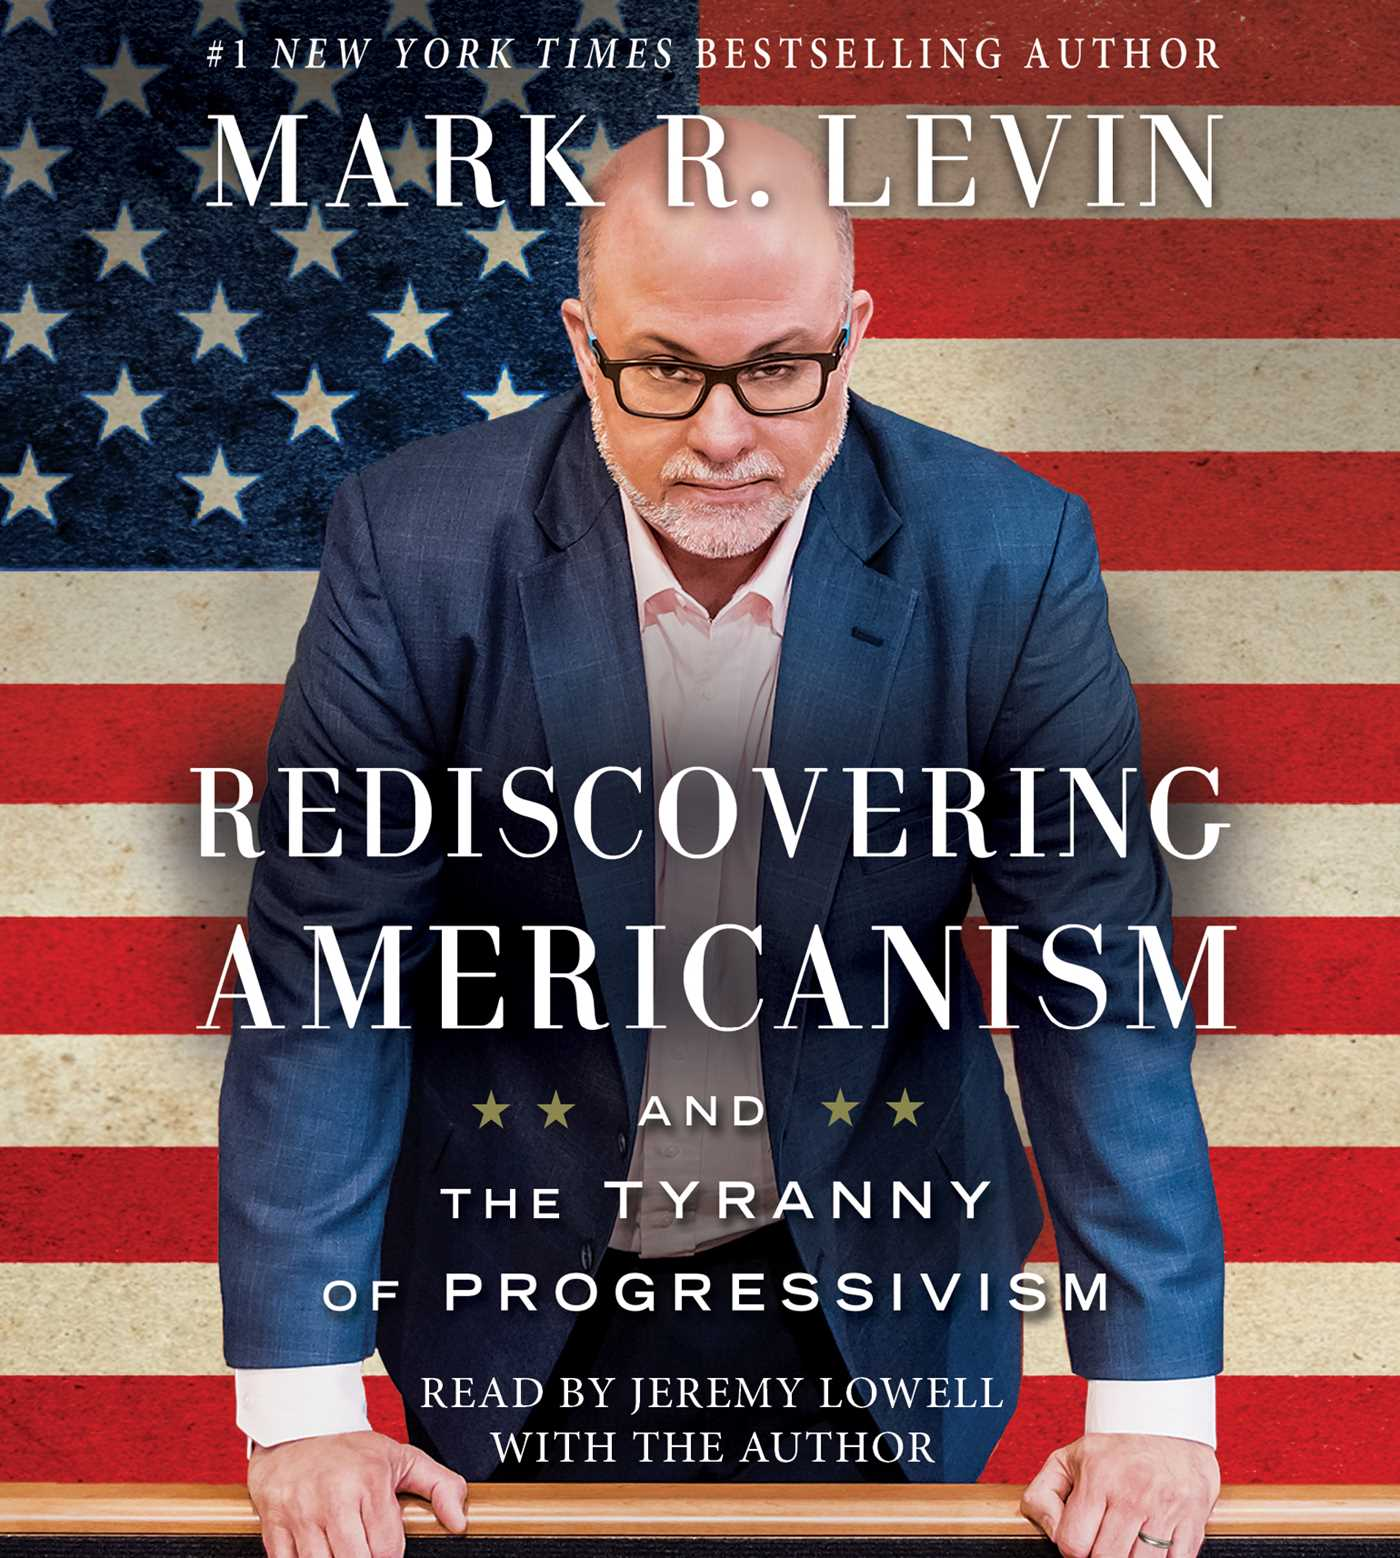 Rediscovering americanism 9781508236221 hr